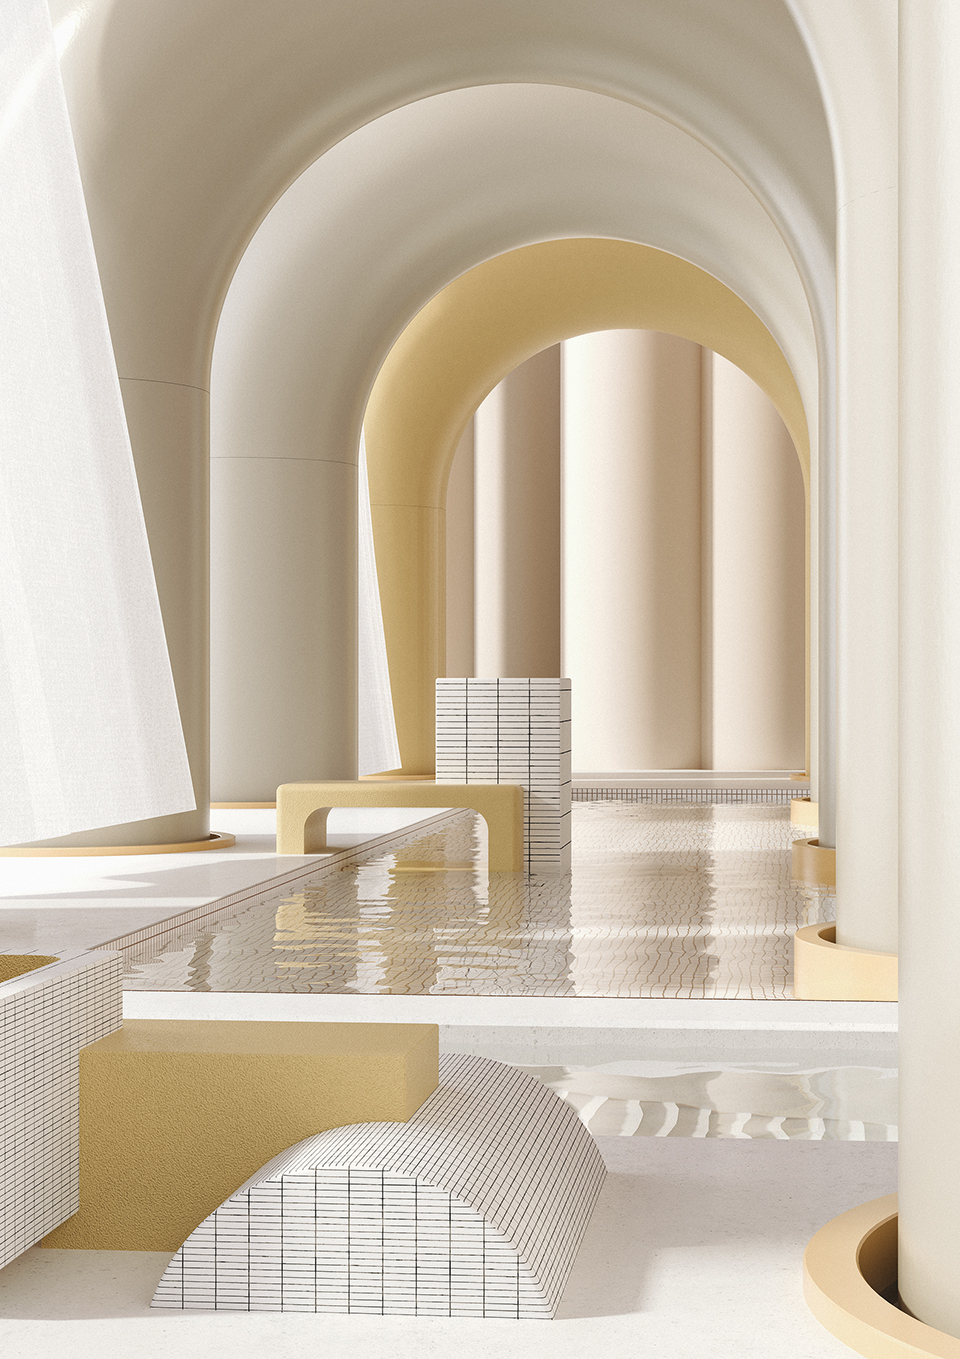 3D-visuals-trends-for-2021-2022-interior-and-exterior-spaces7